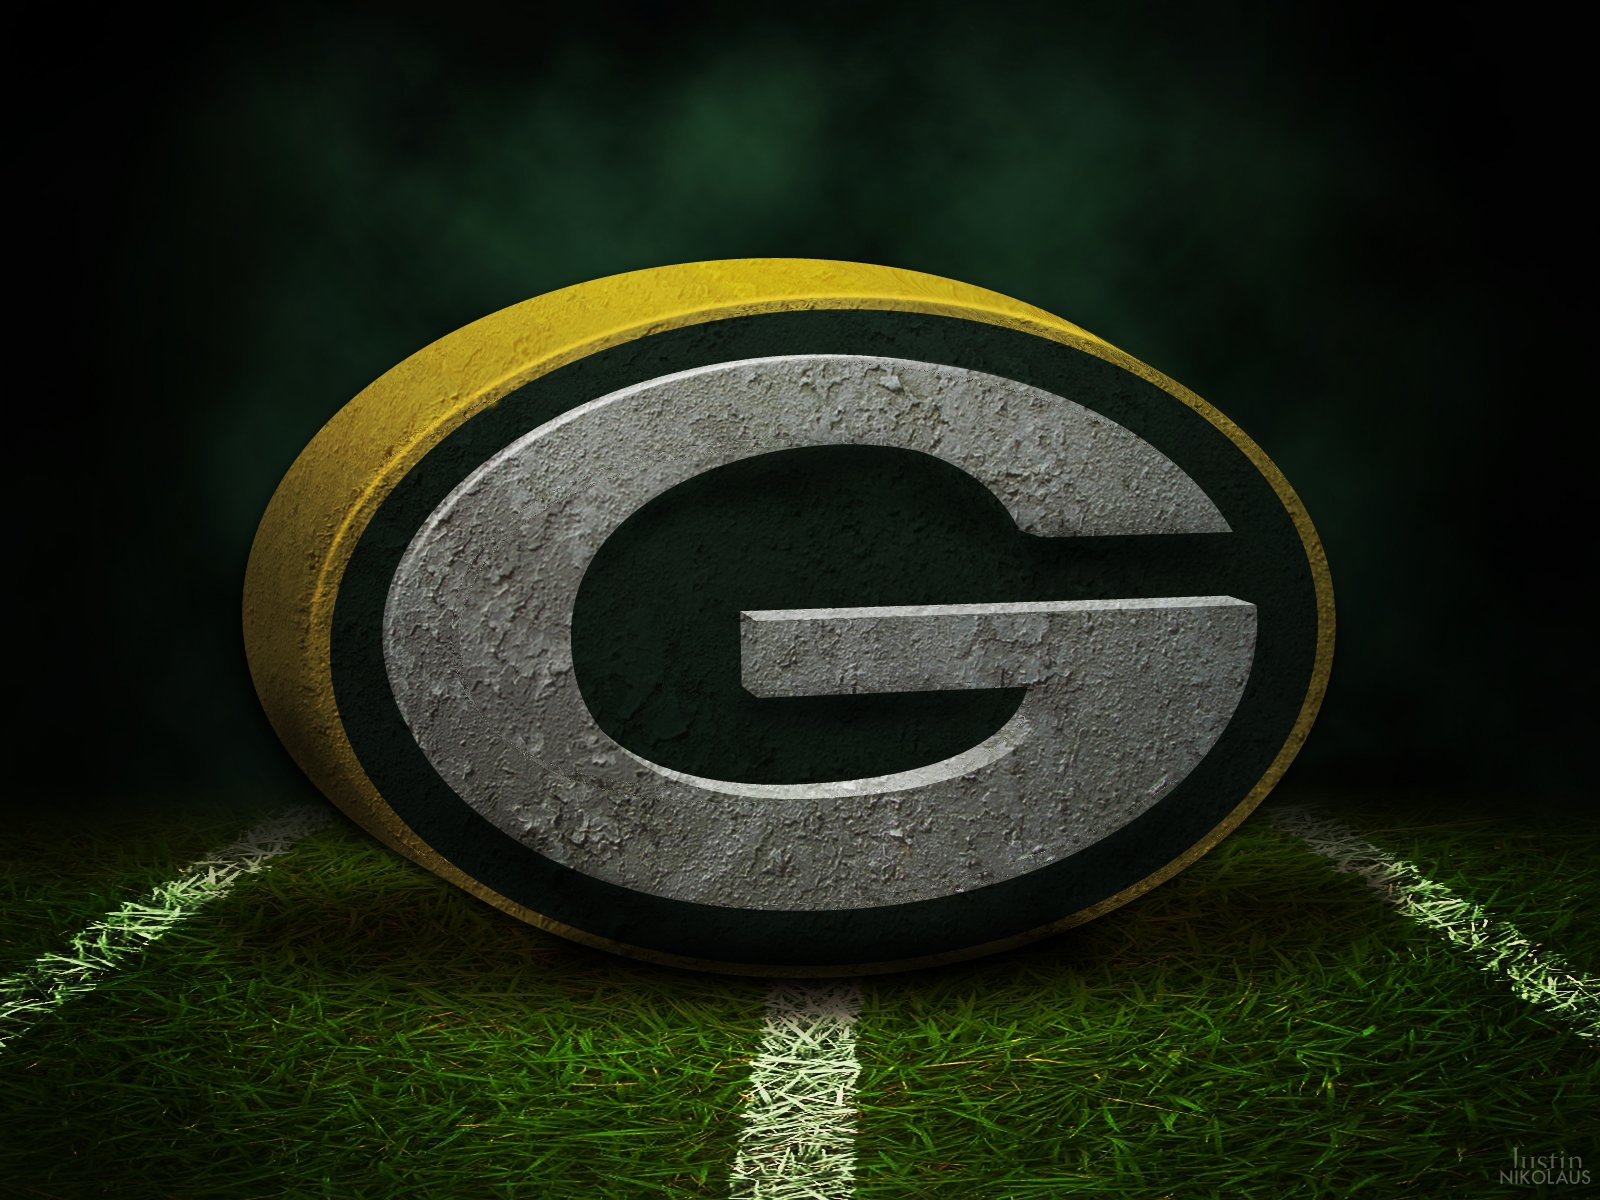 Green Bay Packer Wallpapers 365 Days of Design 1600x1200